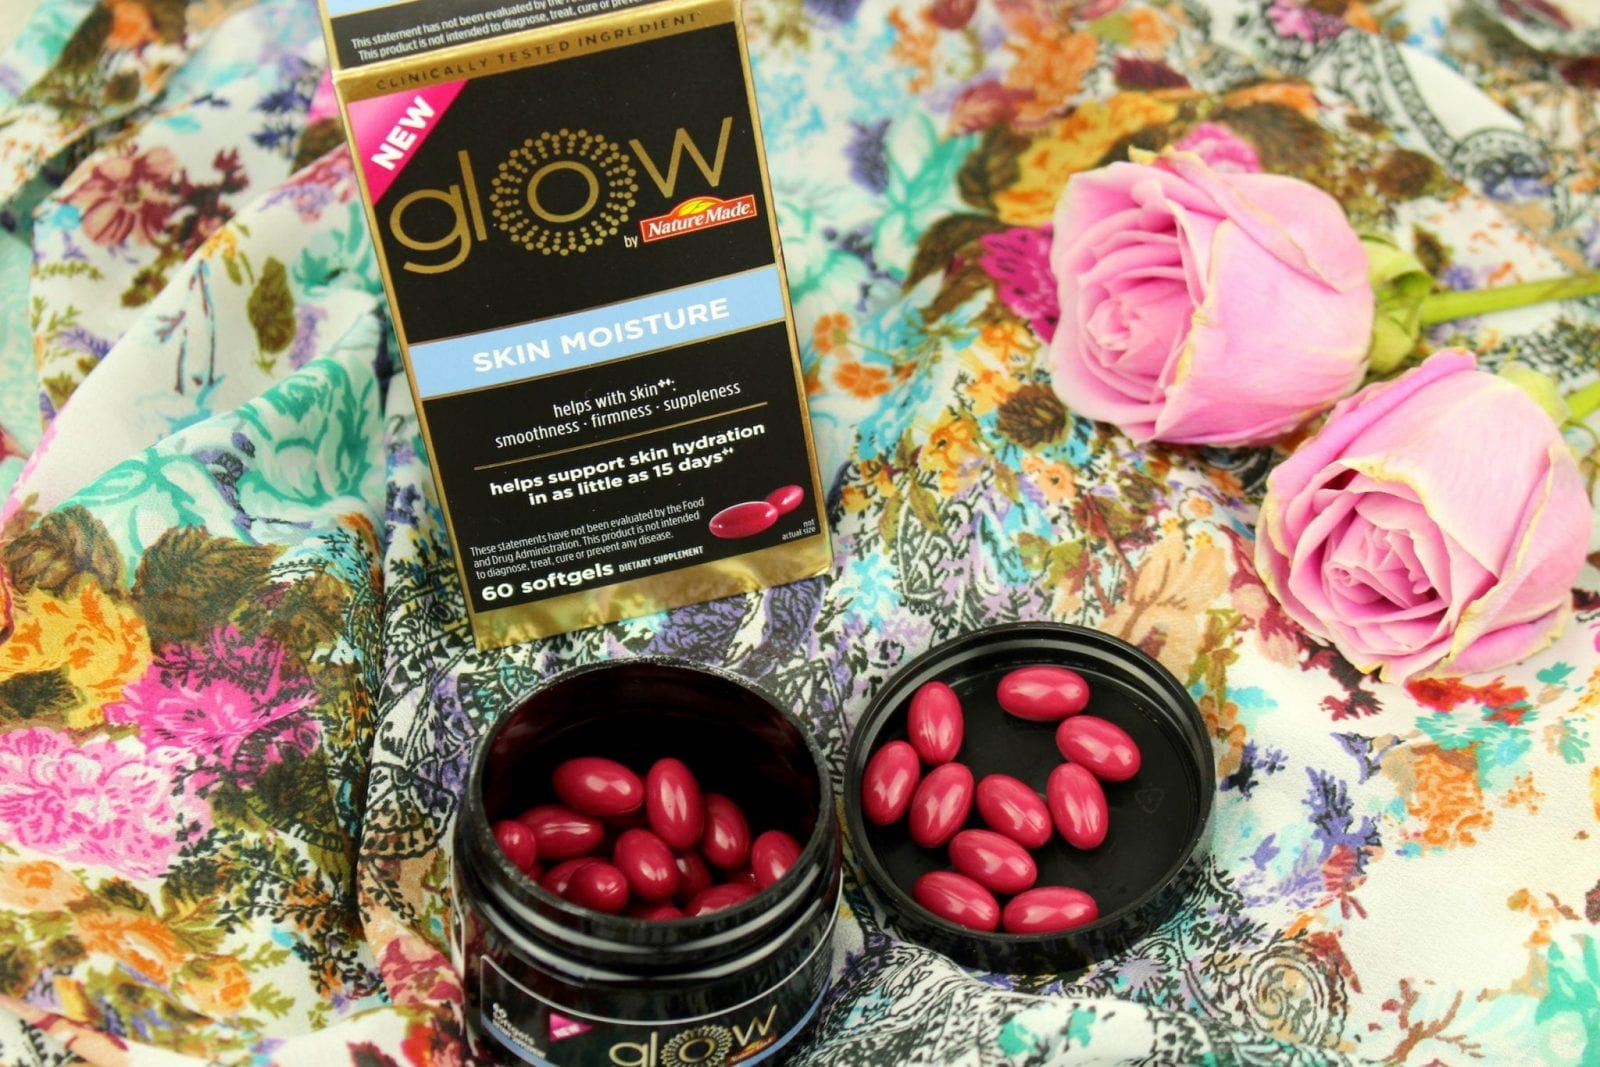 Testing Glow by Nature Made® Skin Moisture for 2 Weeks